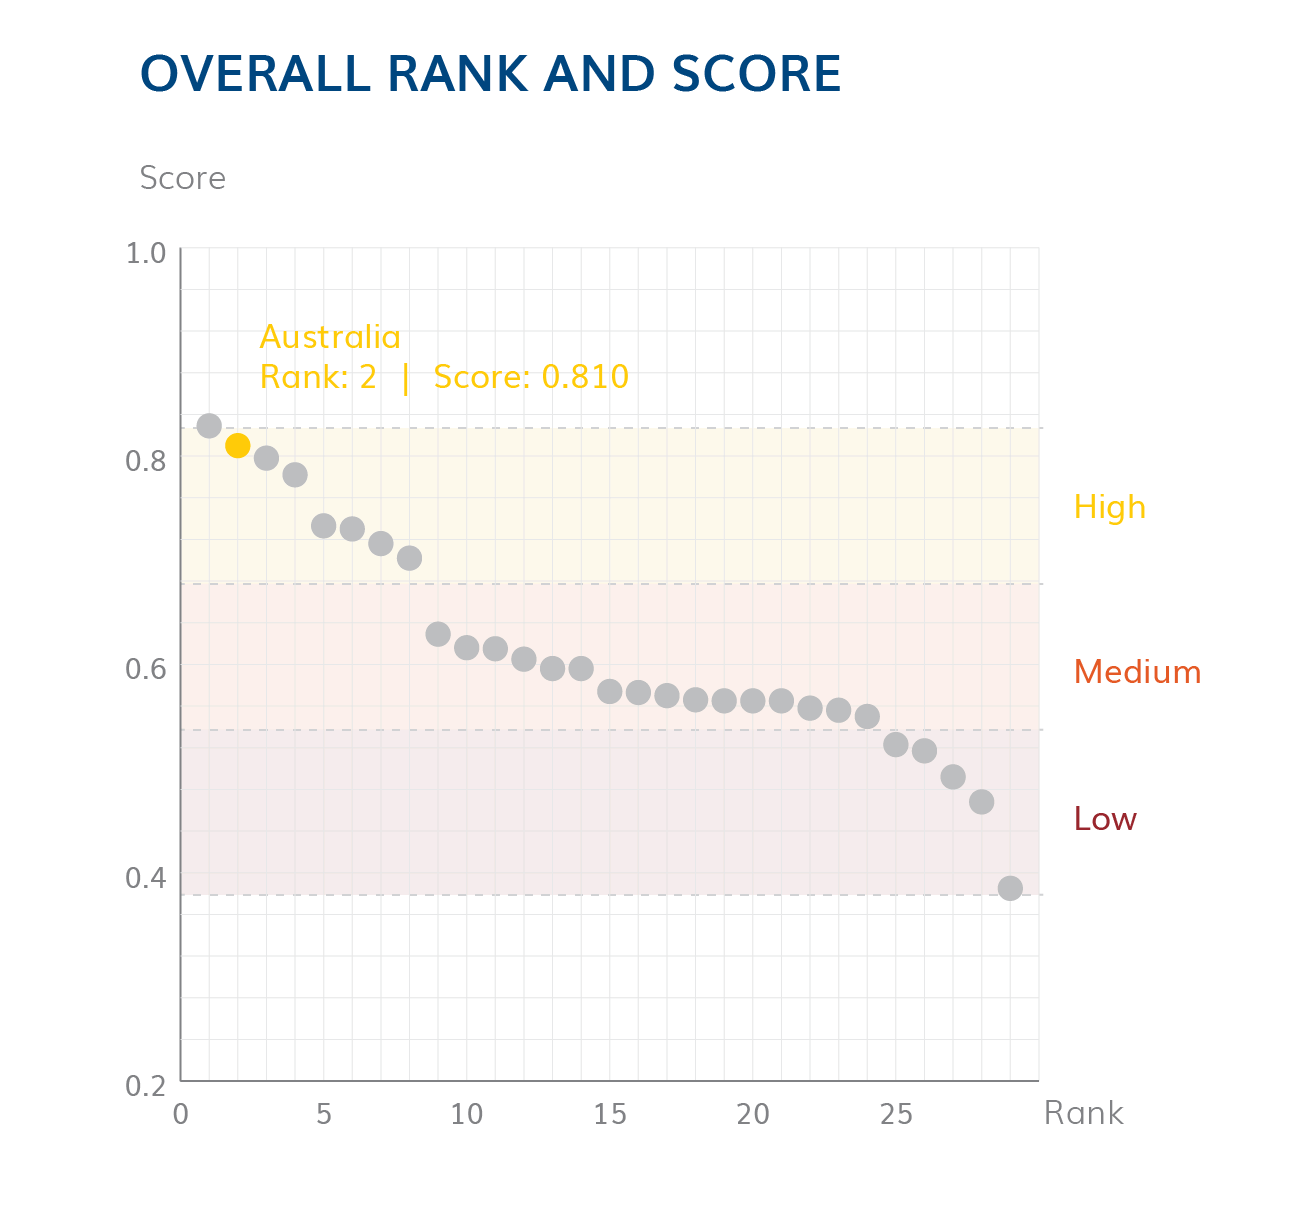 AUS-web_Rank and Score.png